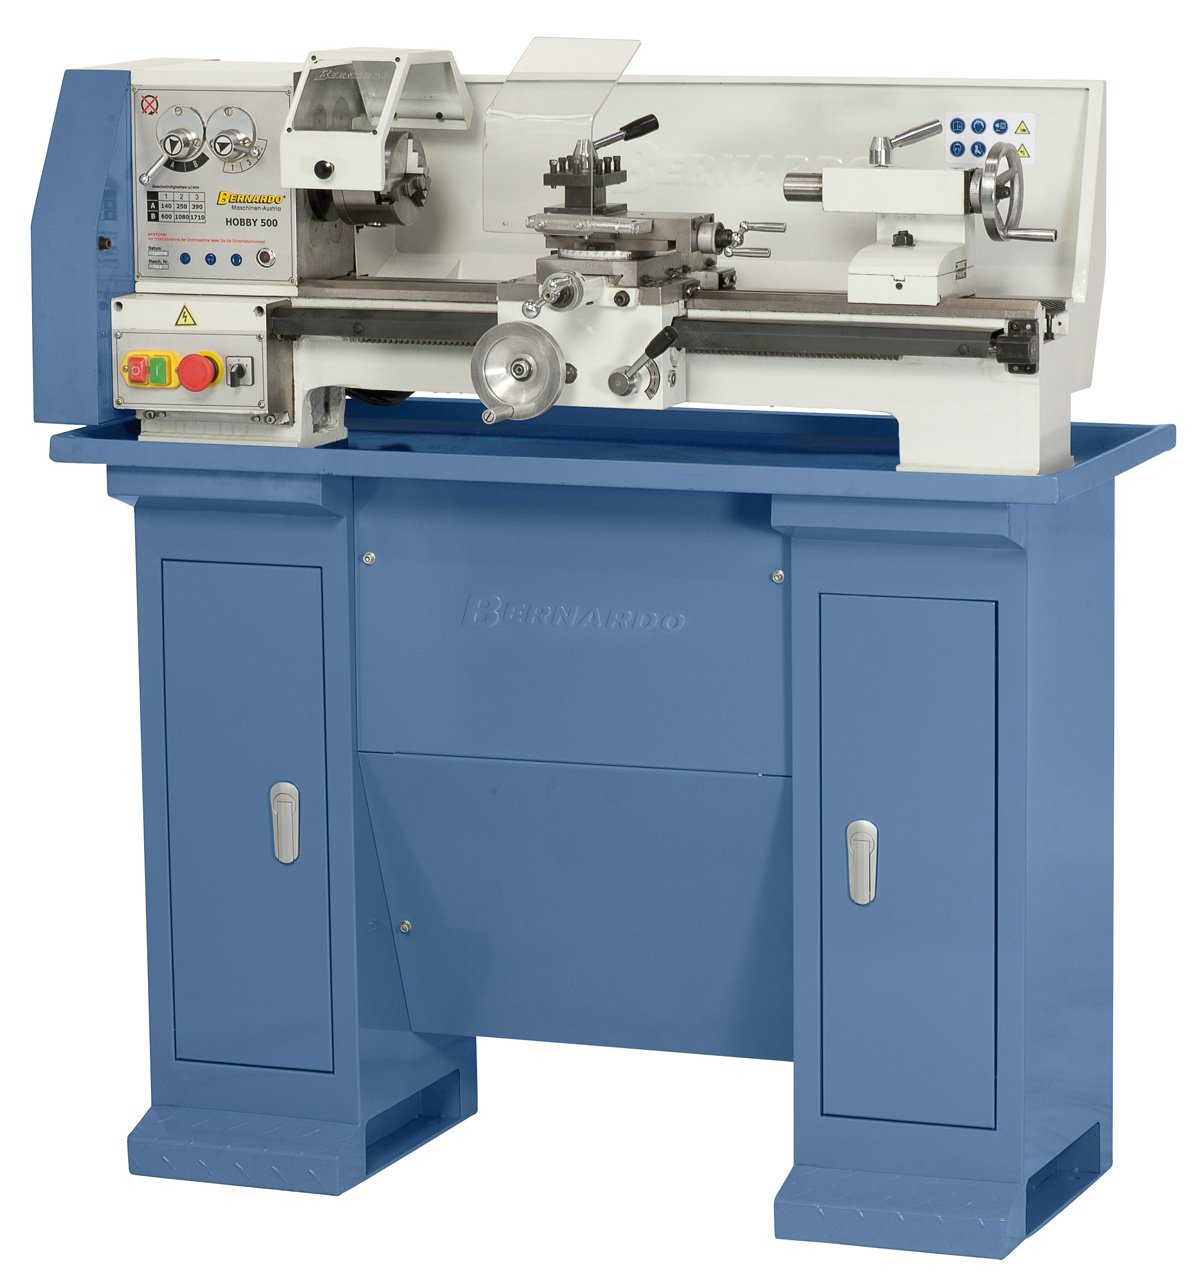 Image of   Hobby 500 metaldrejebænk Bernardo